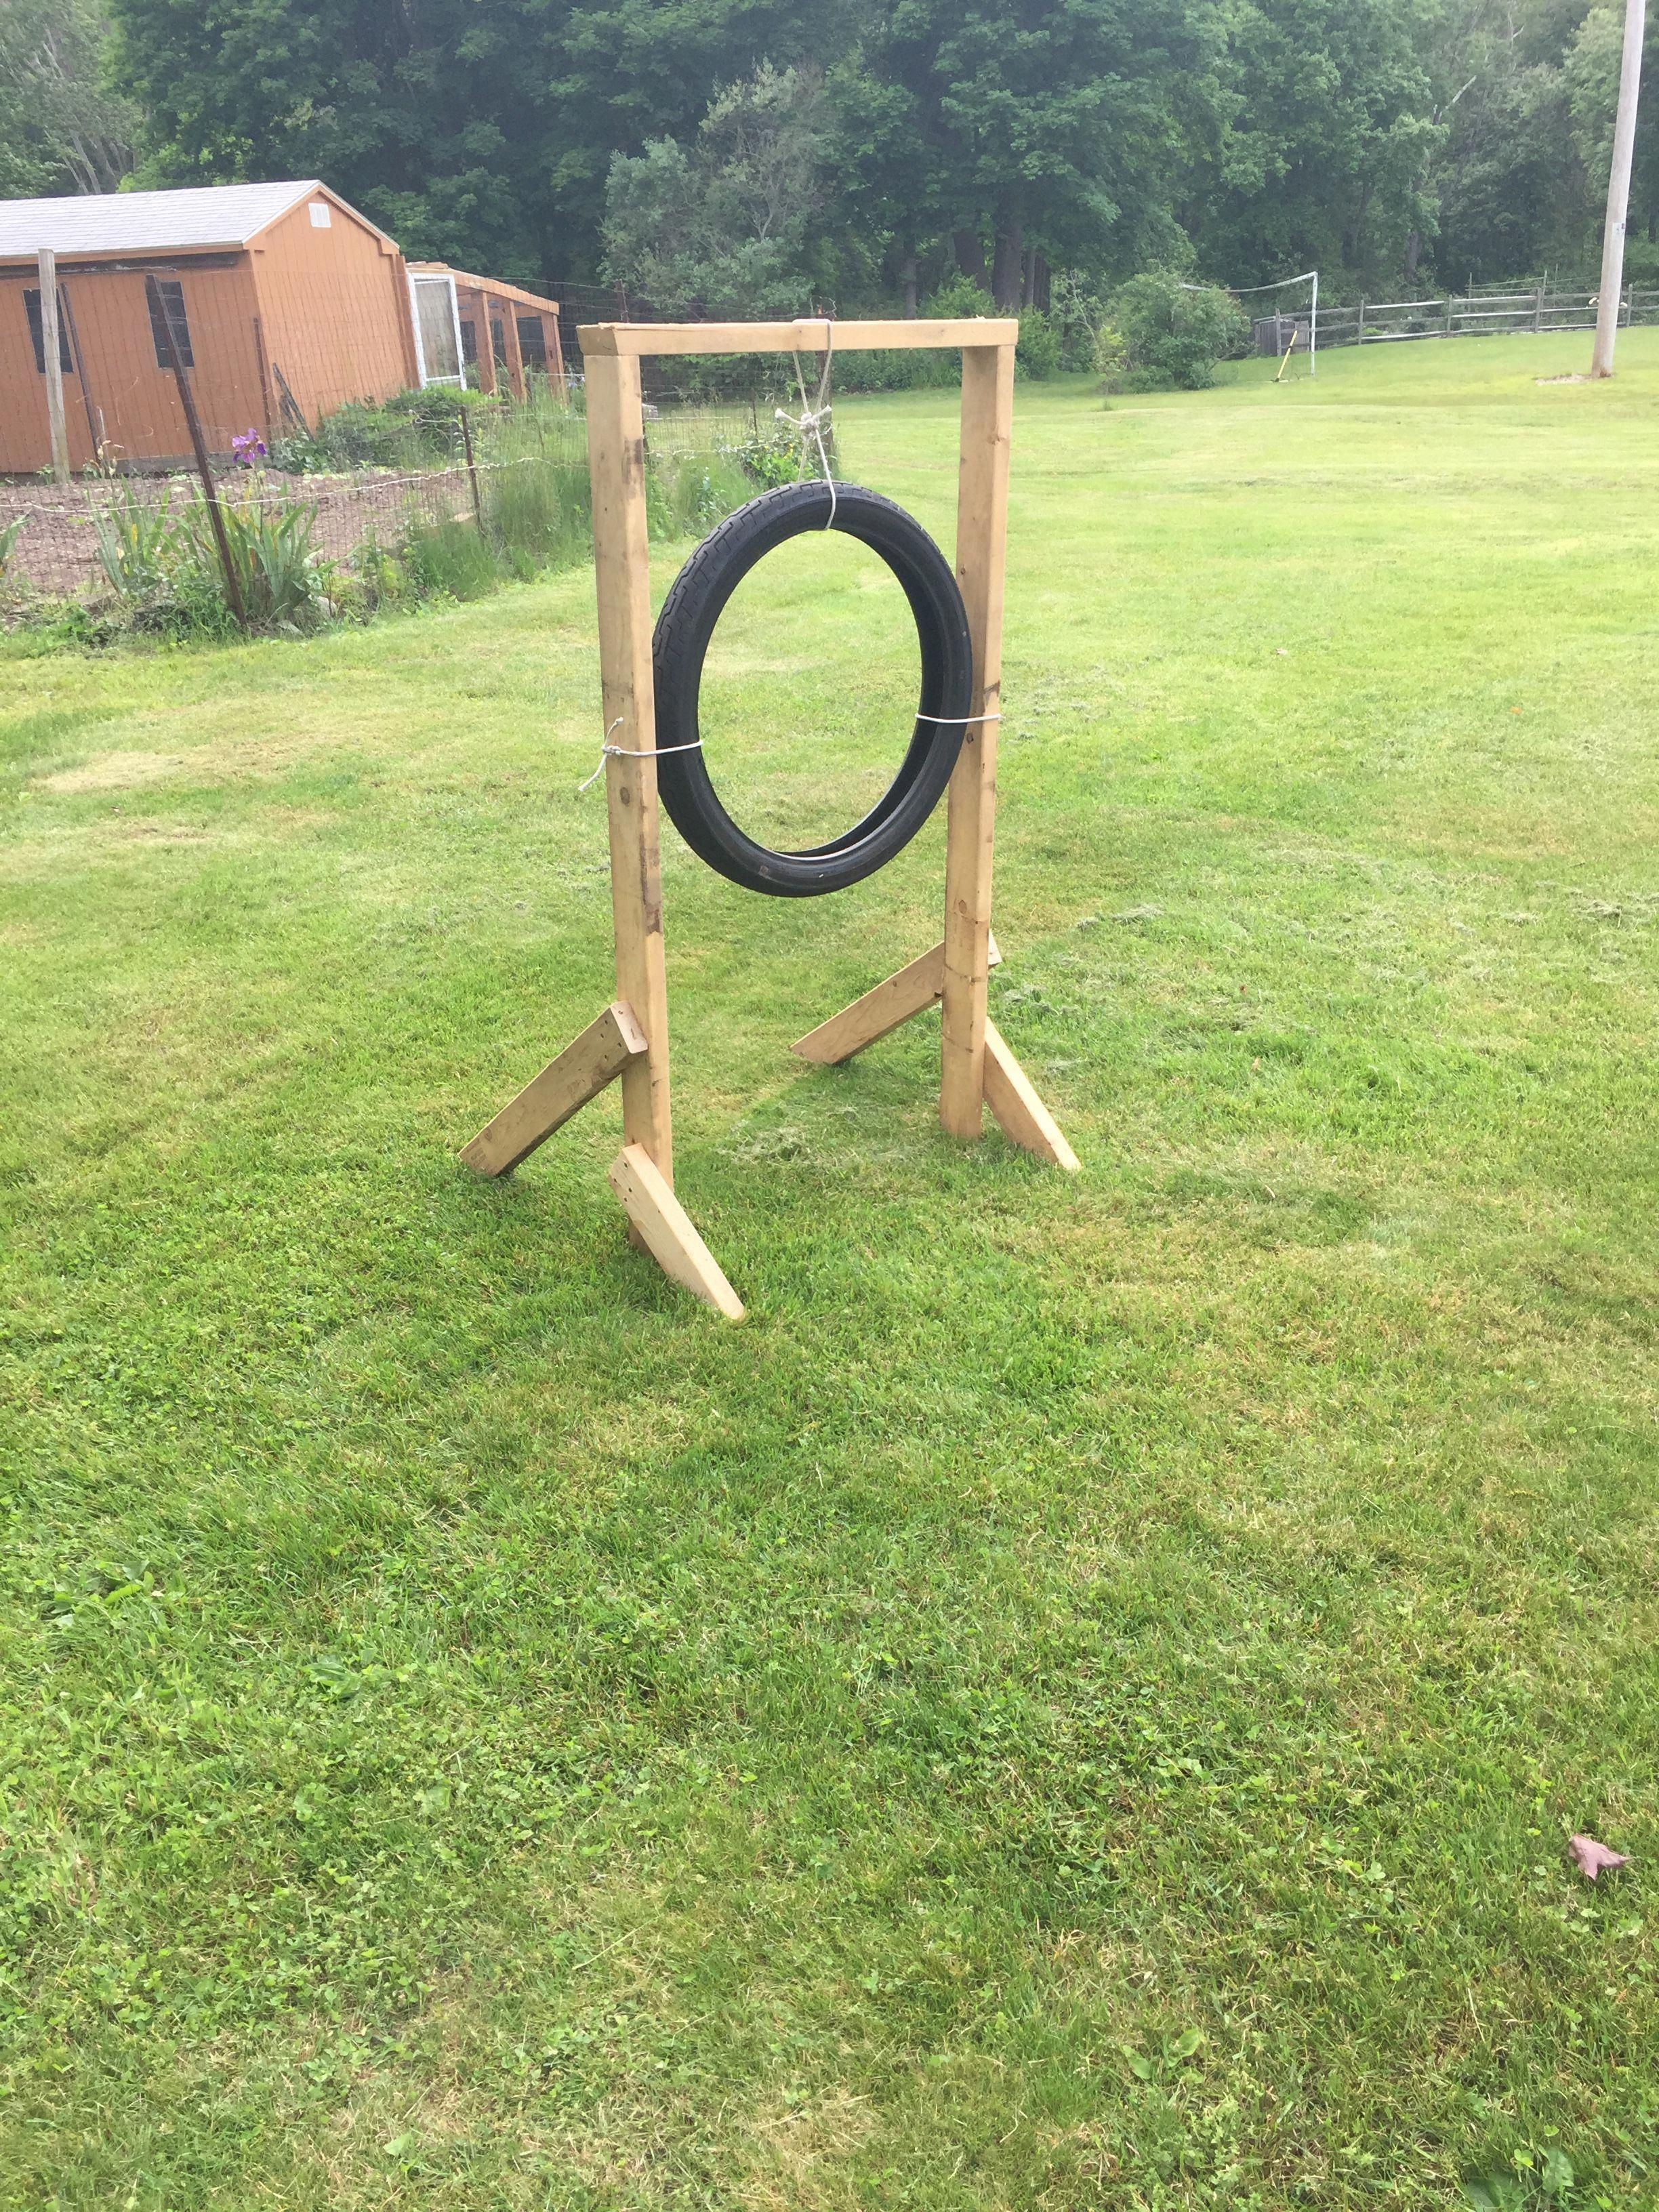 Home made football or baseball target practice in 15 mins